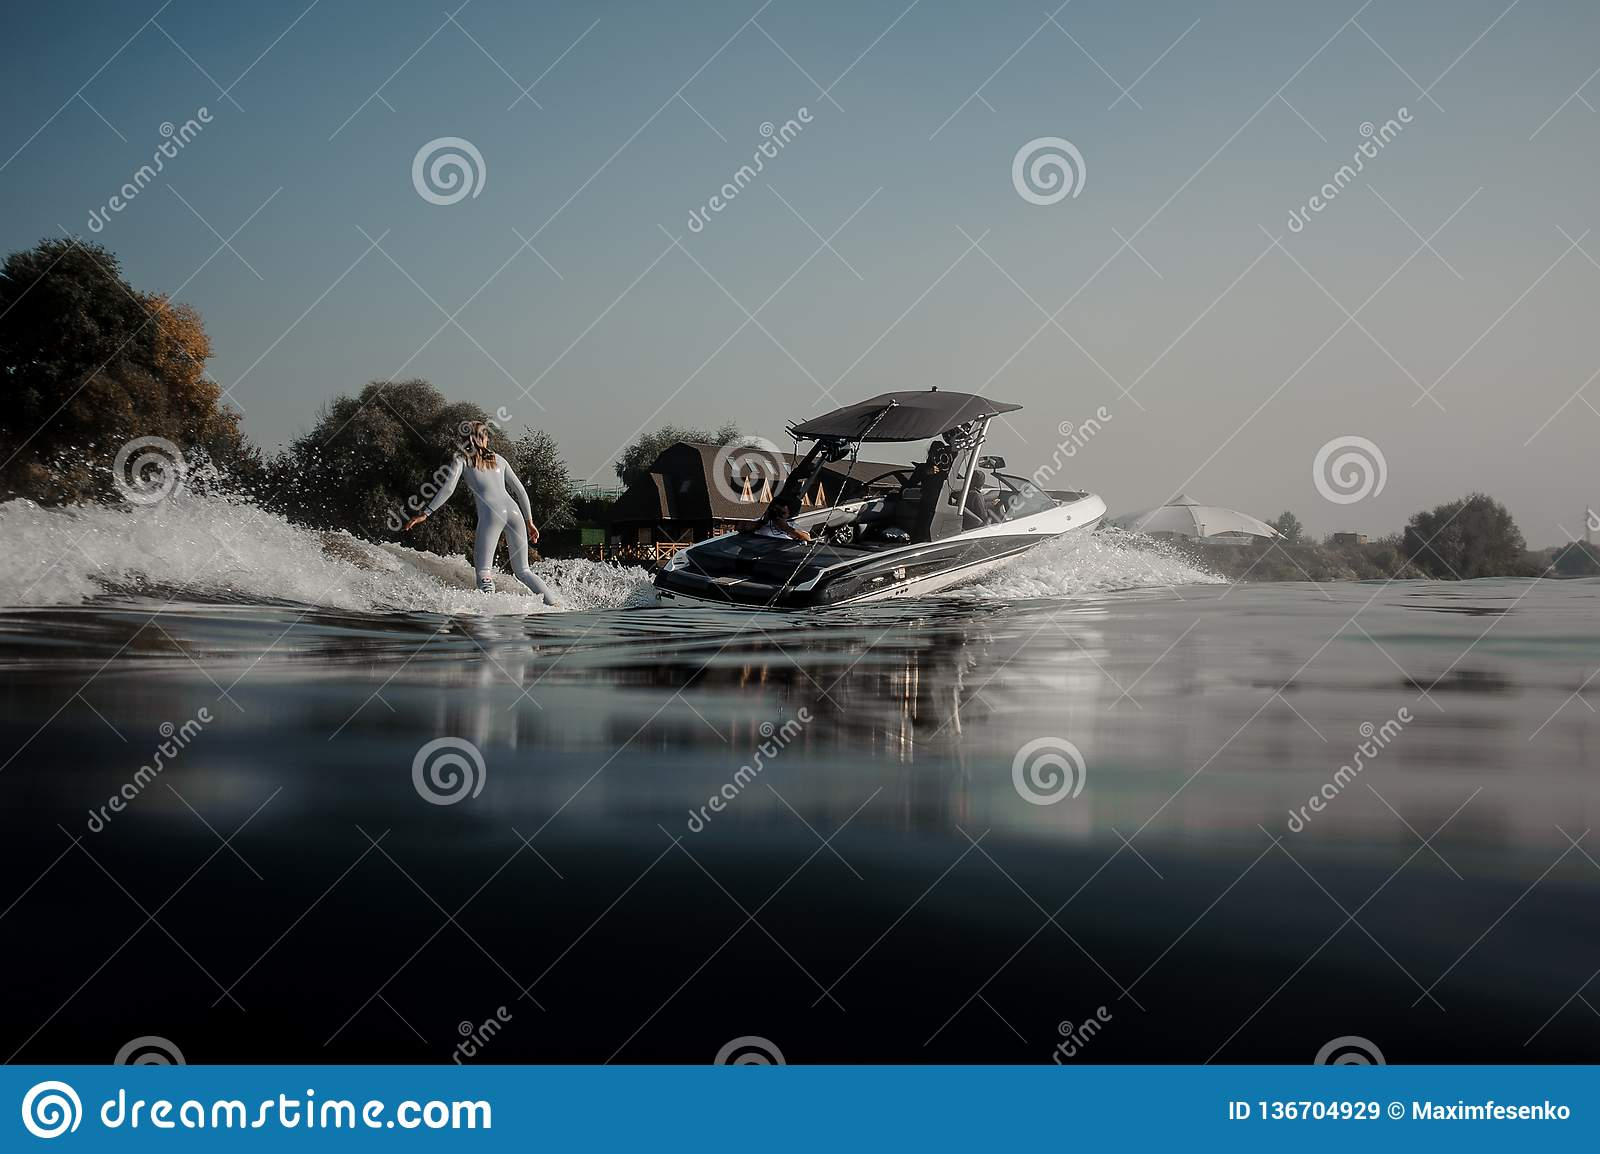 Blonde girl riding on the wakeboard holding a rope on the motorboat